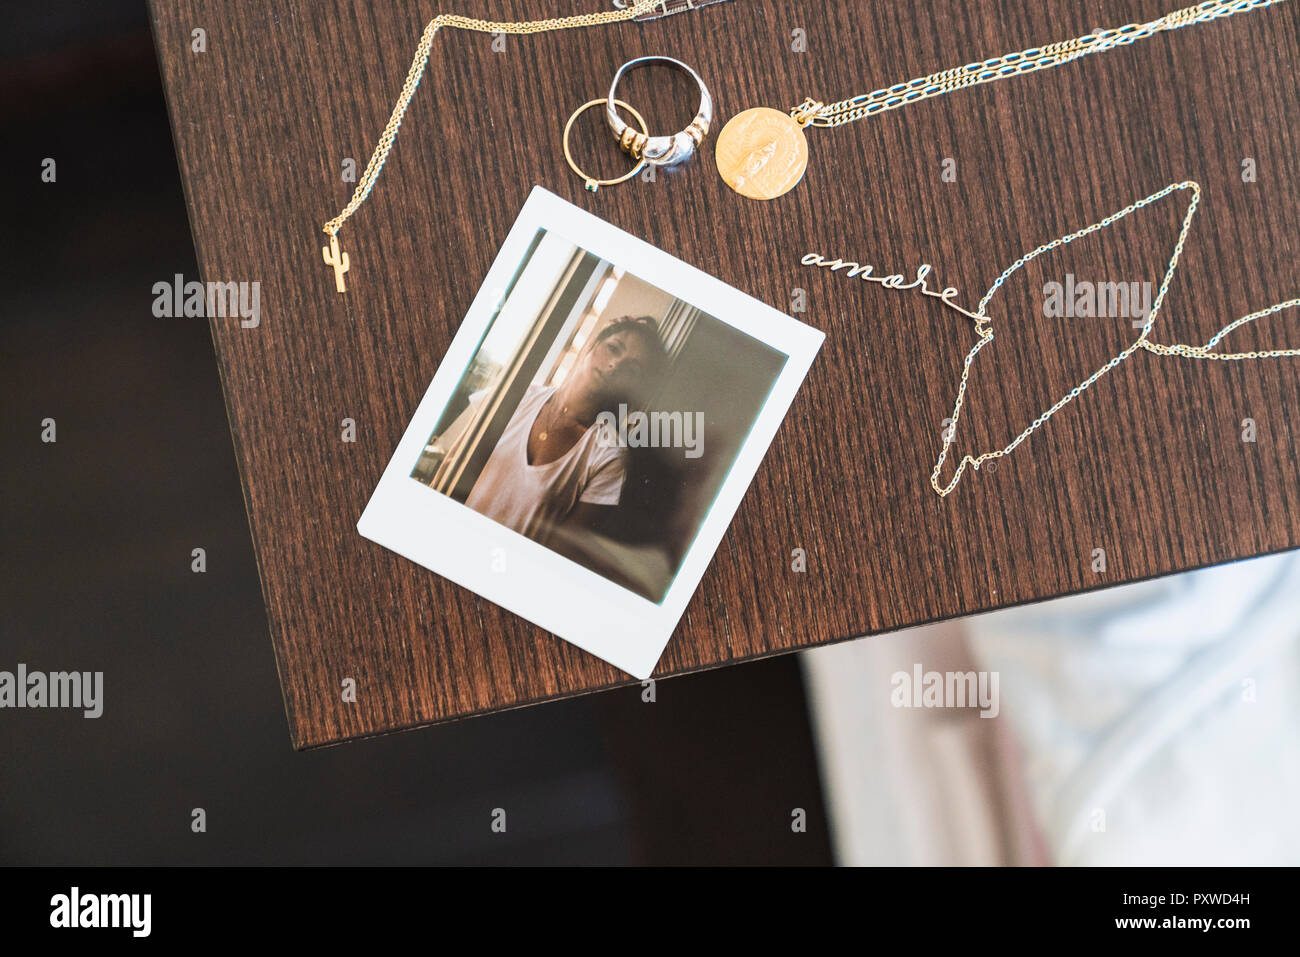 Instant photo of young woman next to jewelry on wooden table - Stock Image